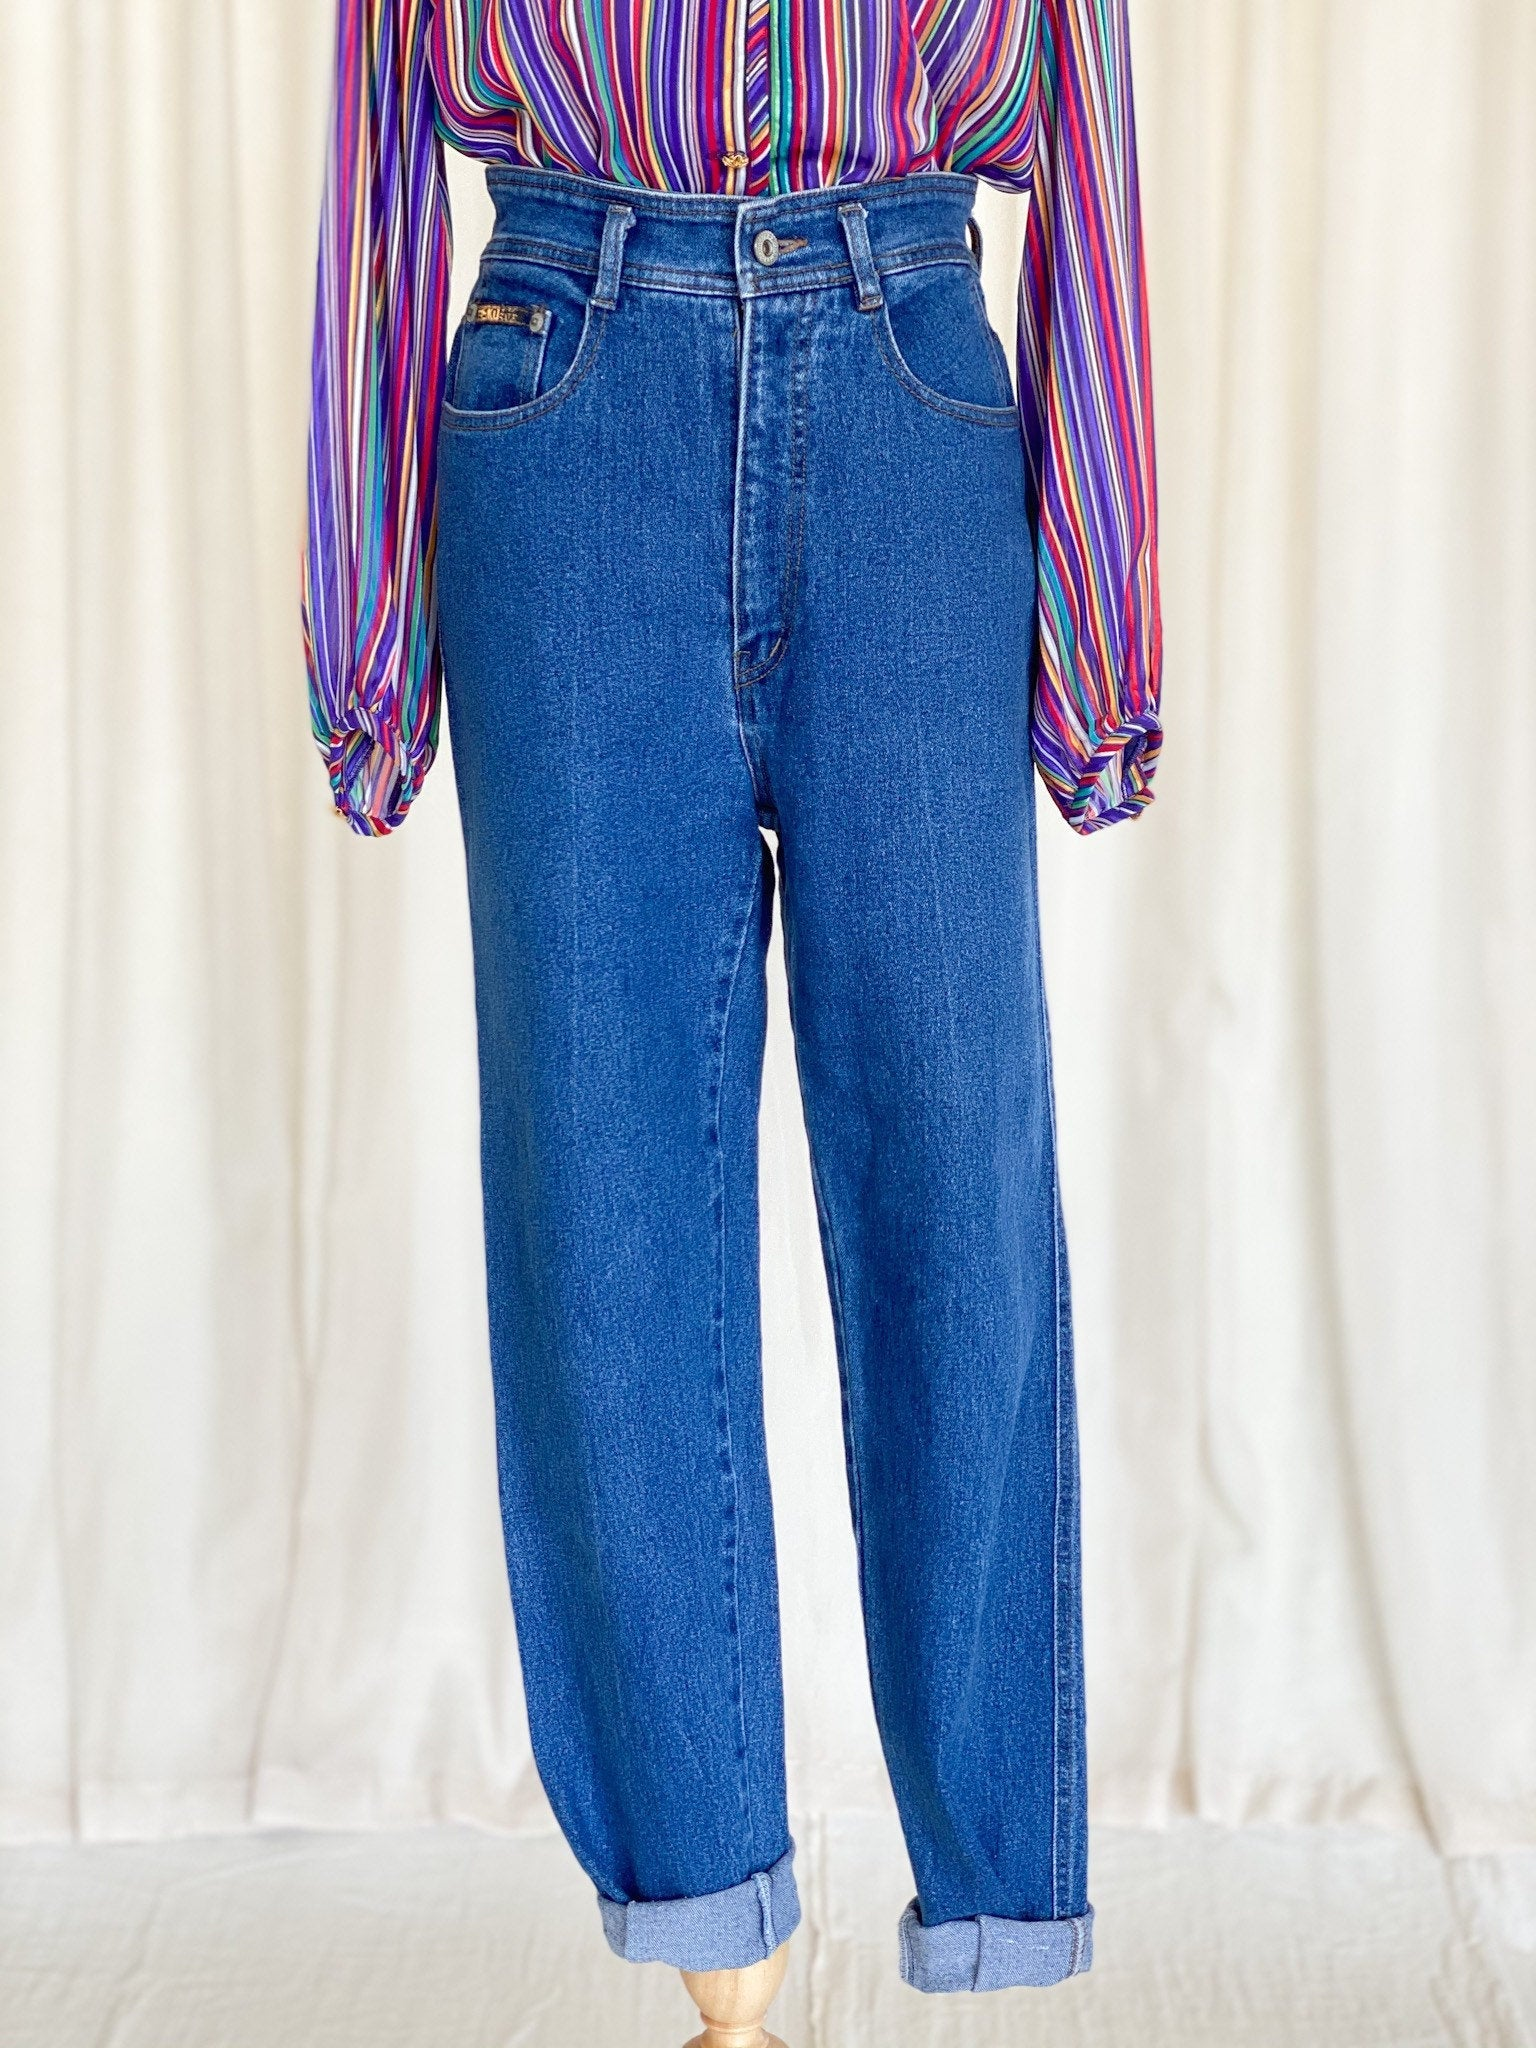 Vintage 80s blue denim pants